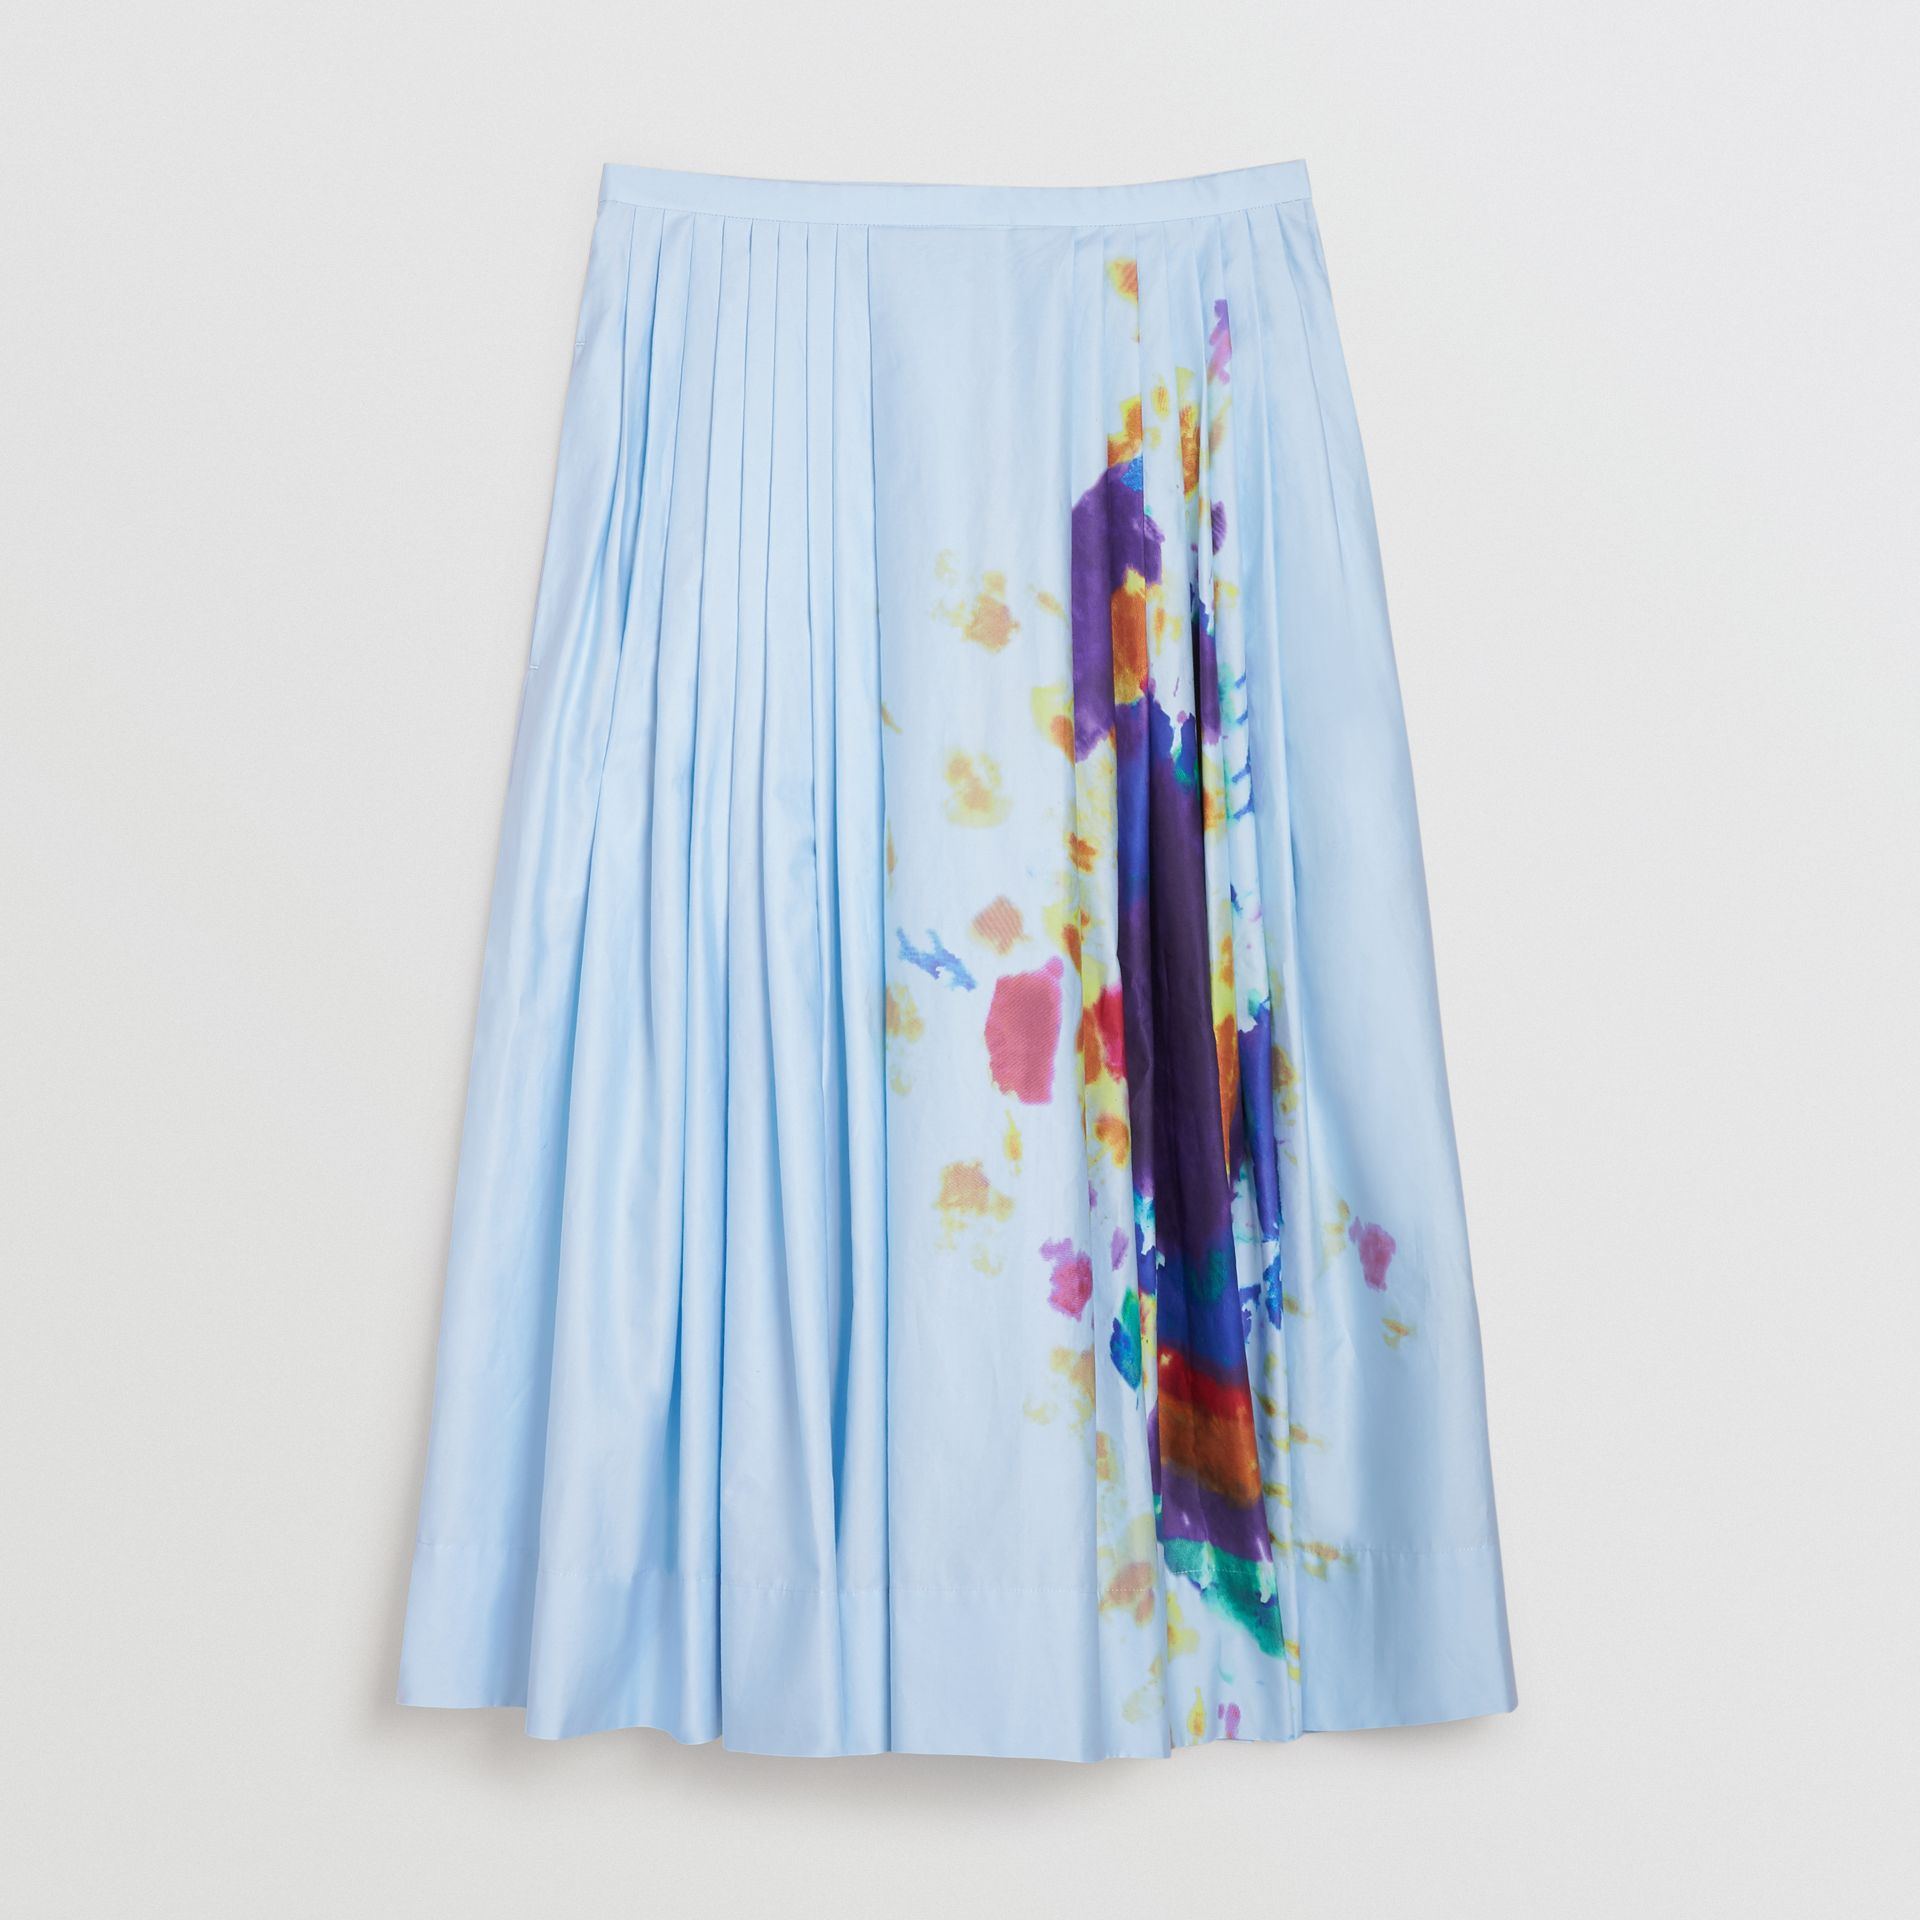 Rainbow Print Cotton Sateen Skirt in Light Blue - Women | Burberry Singapore - gallery image 3